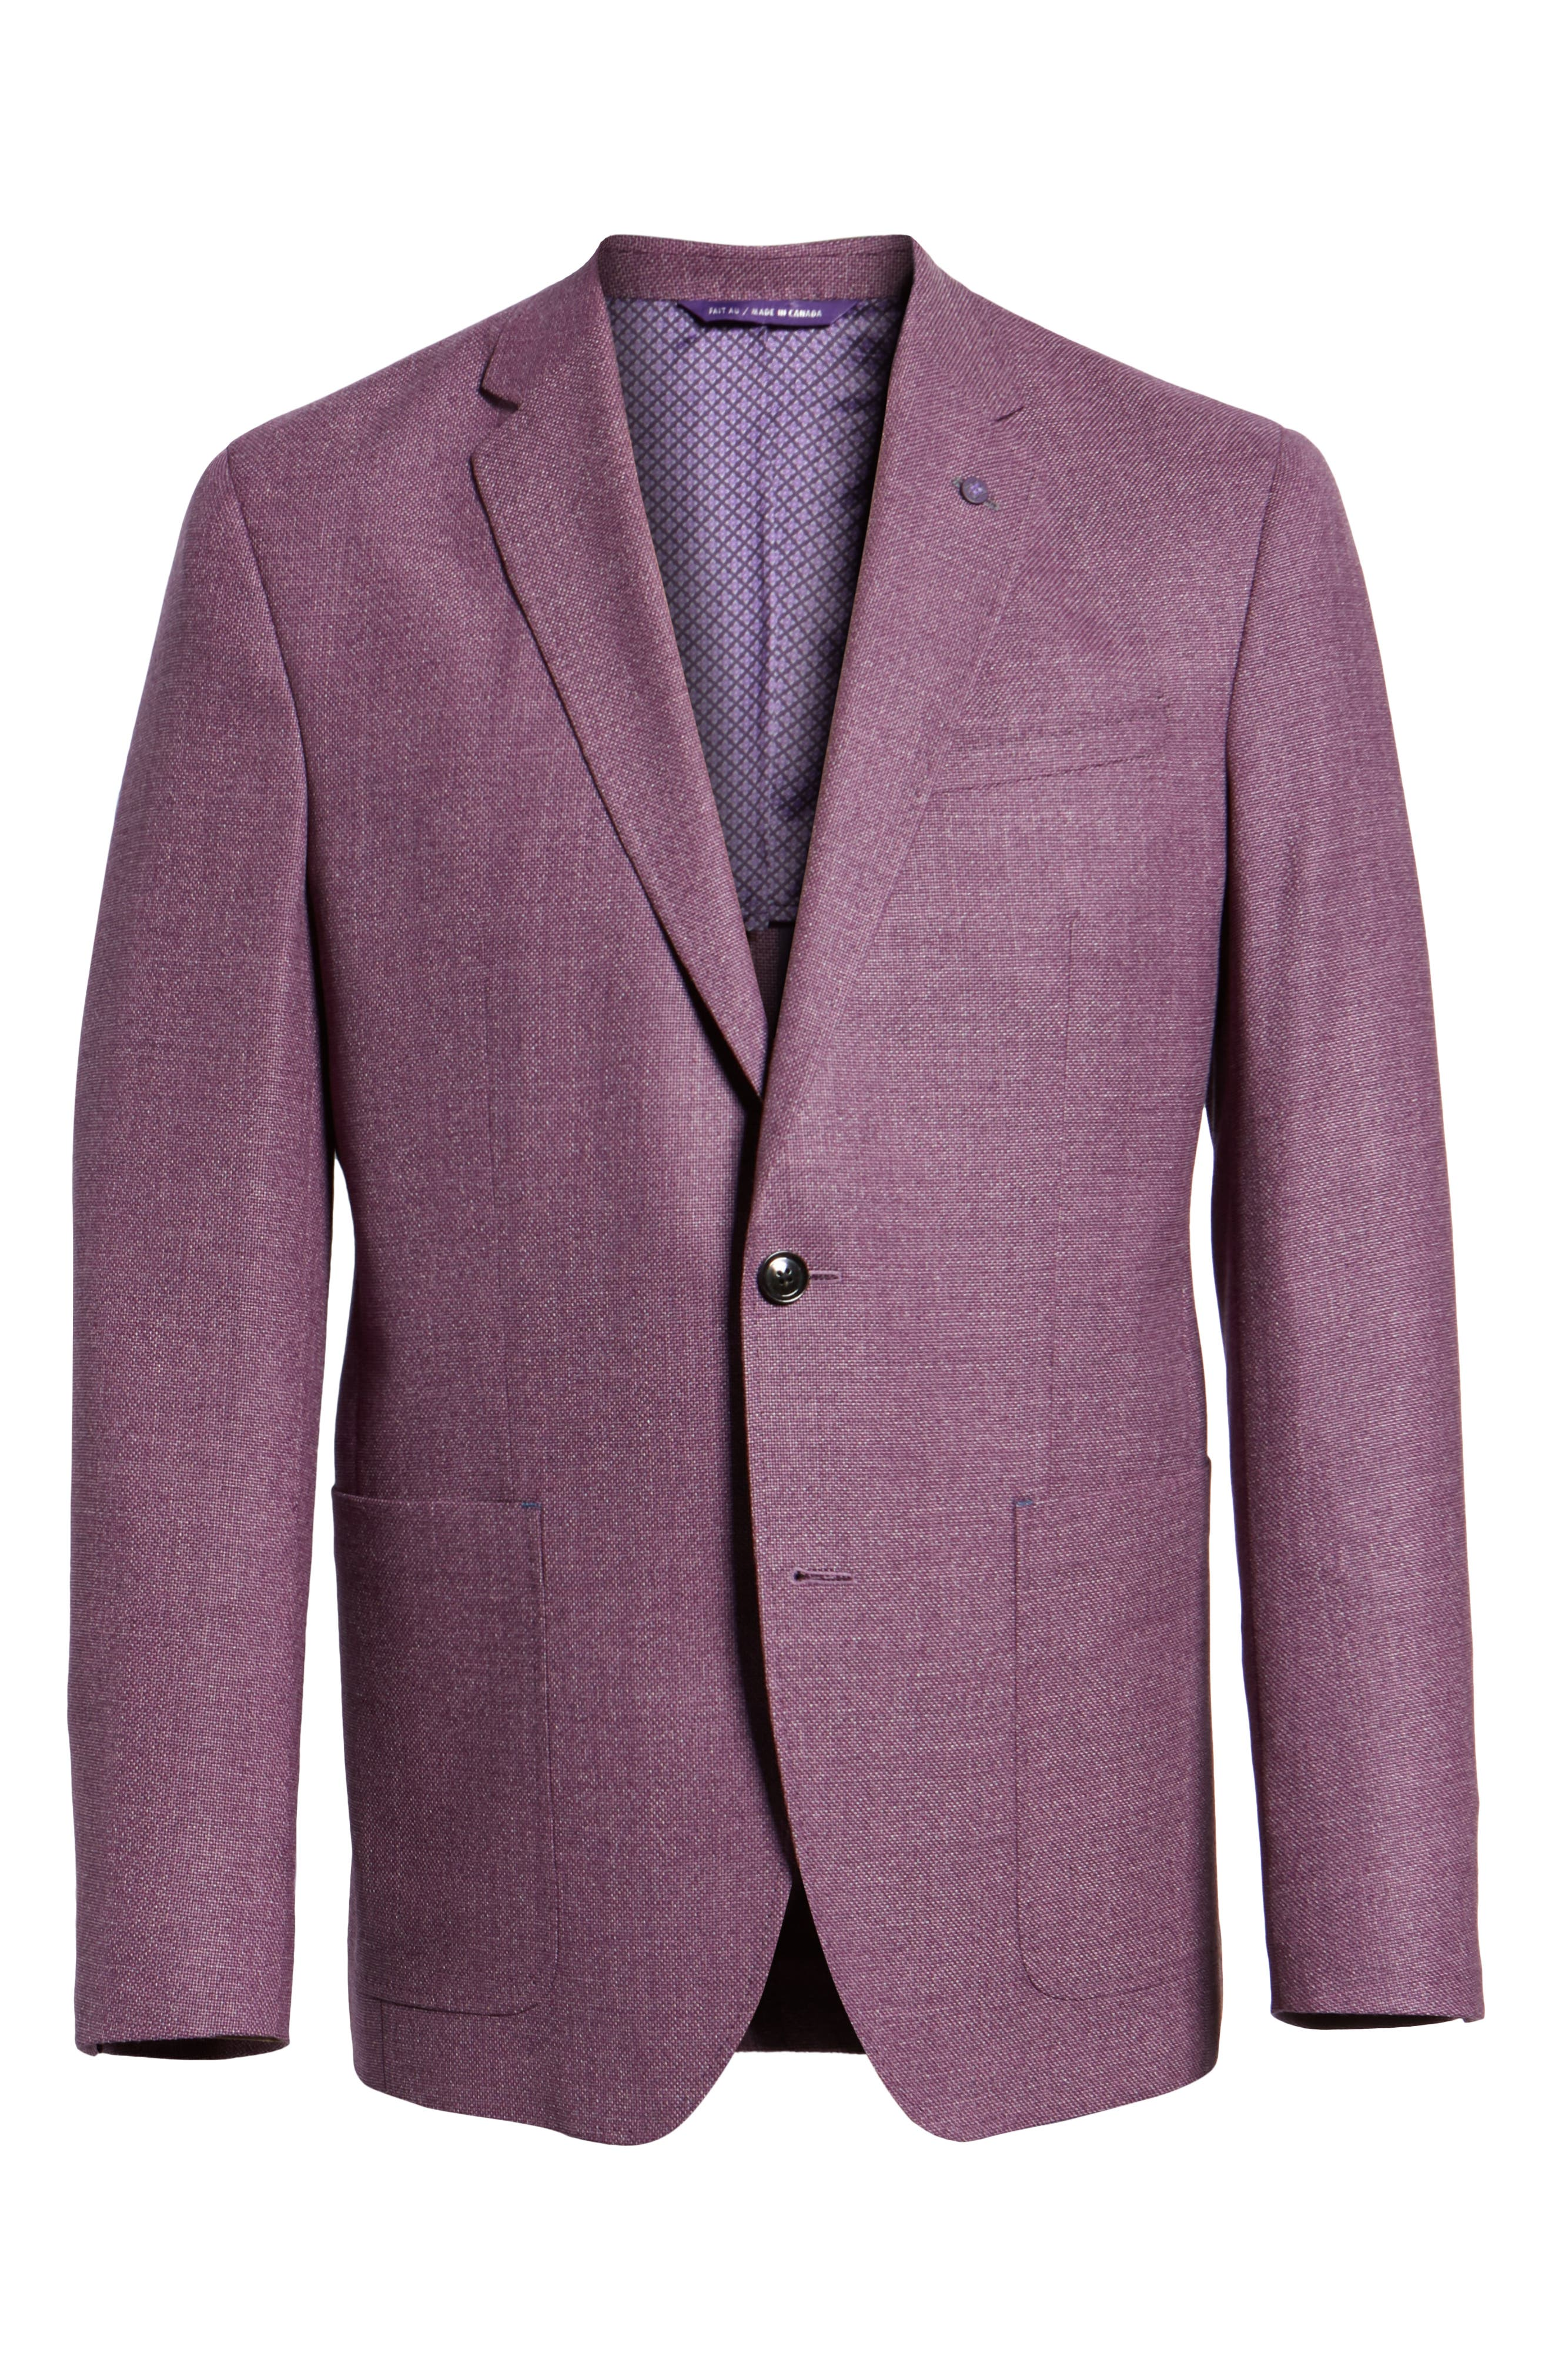 TED BAKER LONDON, Kyle Trim Fit Wool Sport Coat, Alternate thumbnail 5, color, BERRY